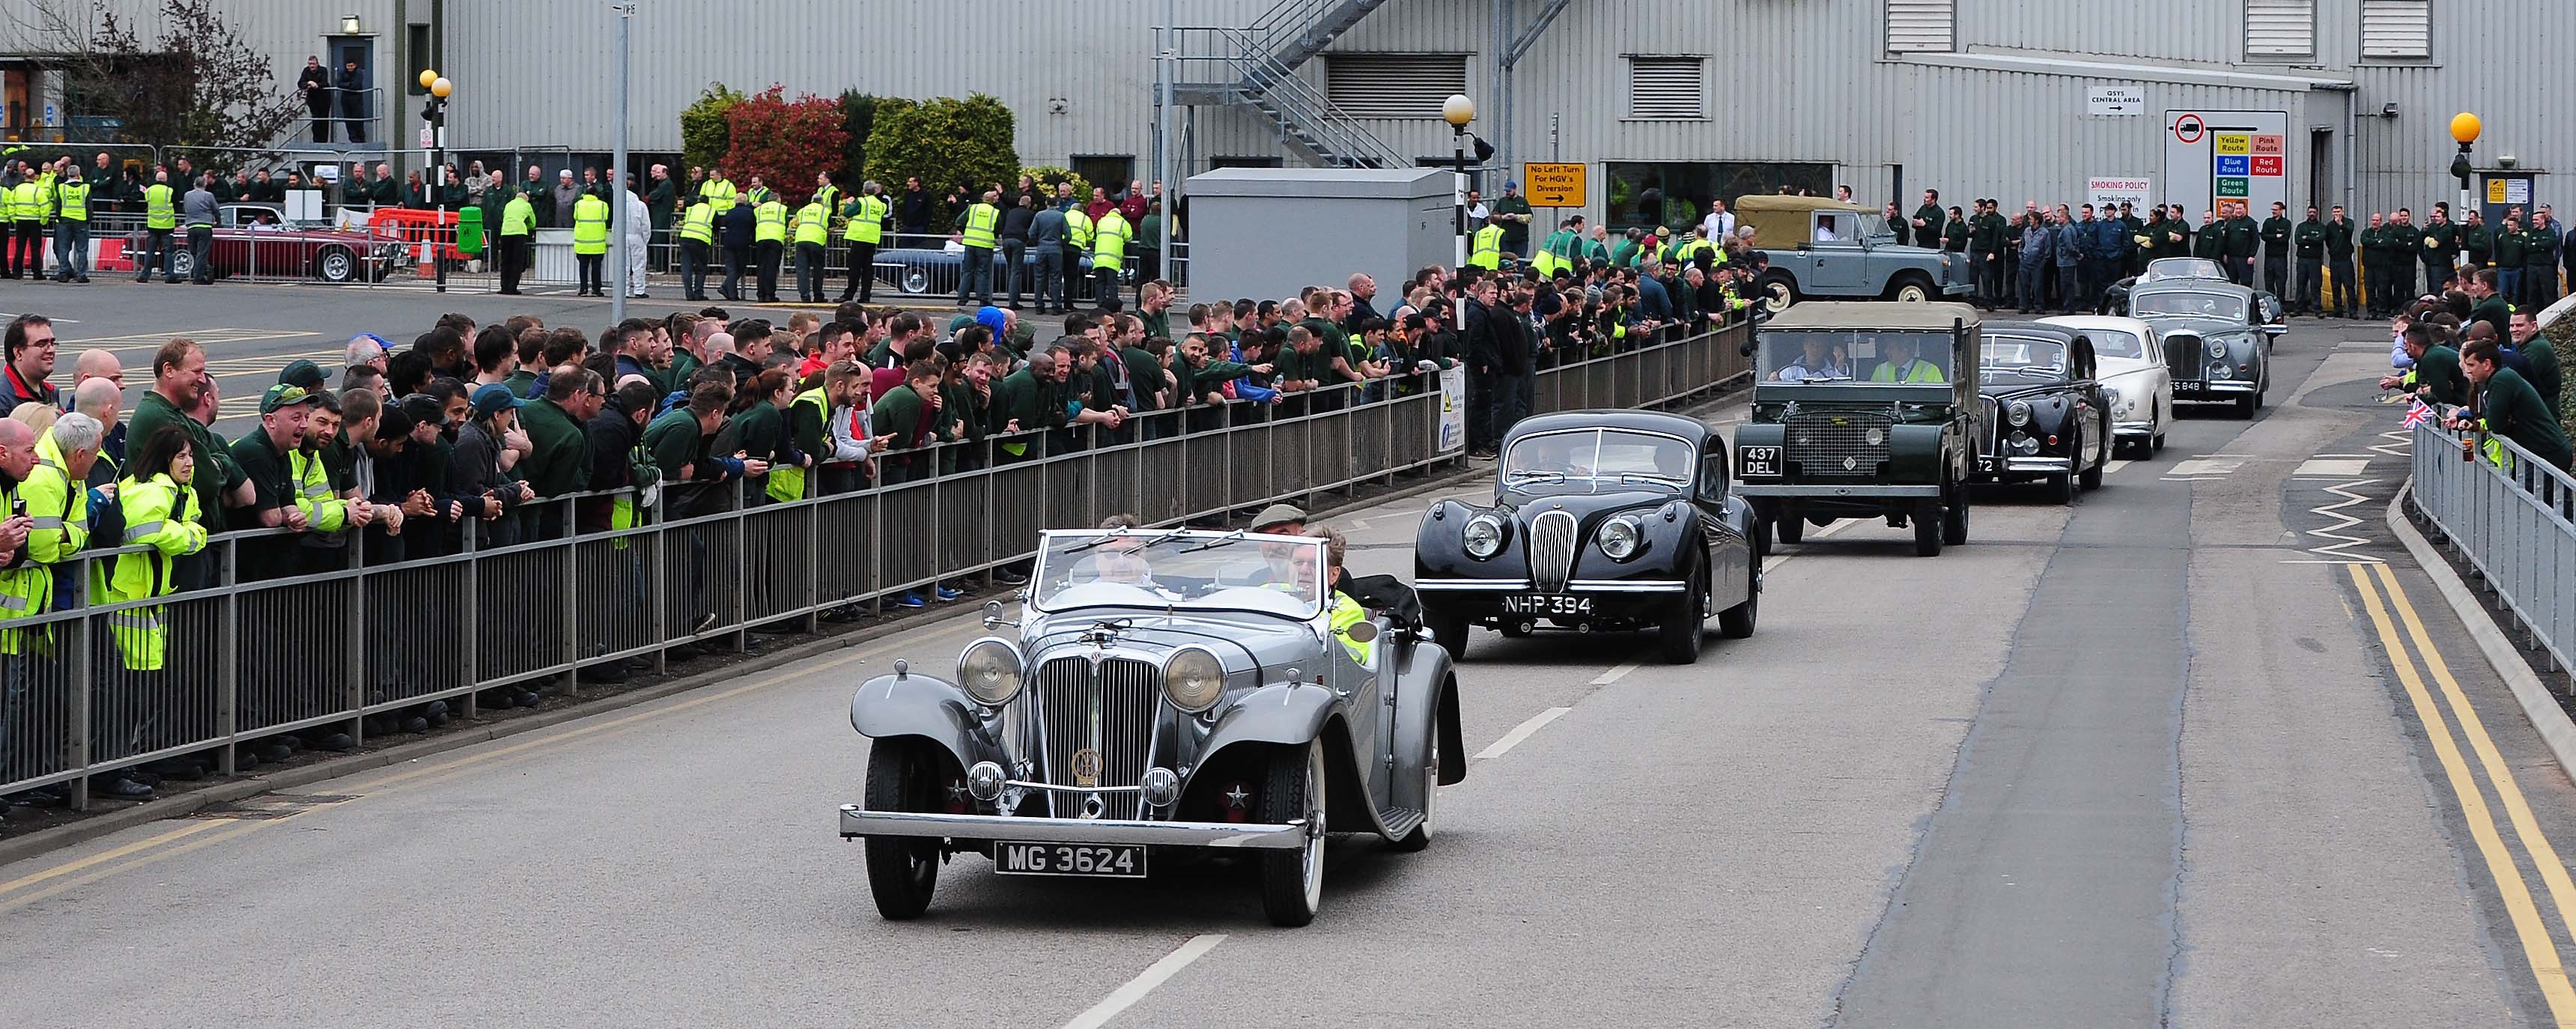 British auto history parades to Solihull - ClassicCars.com Journal